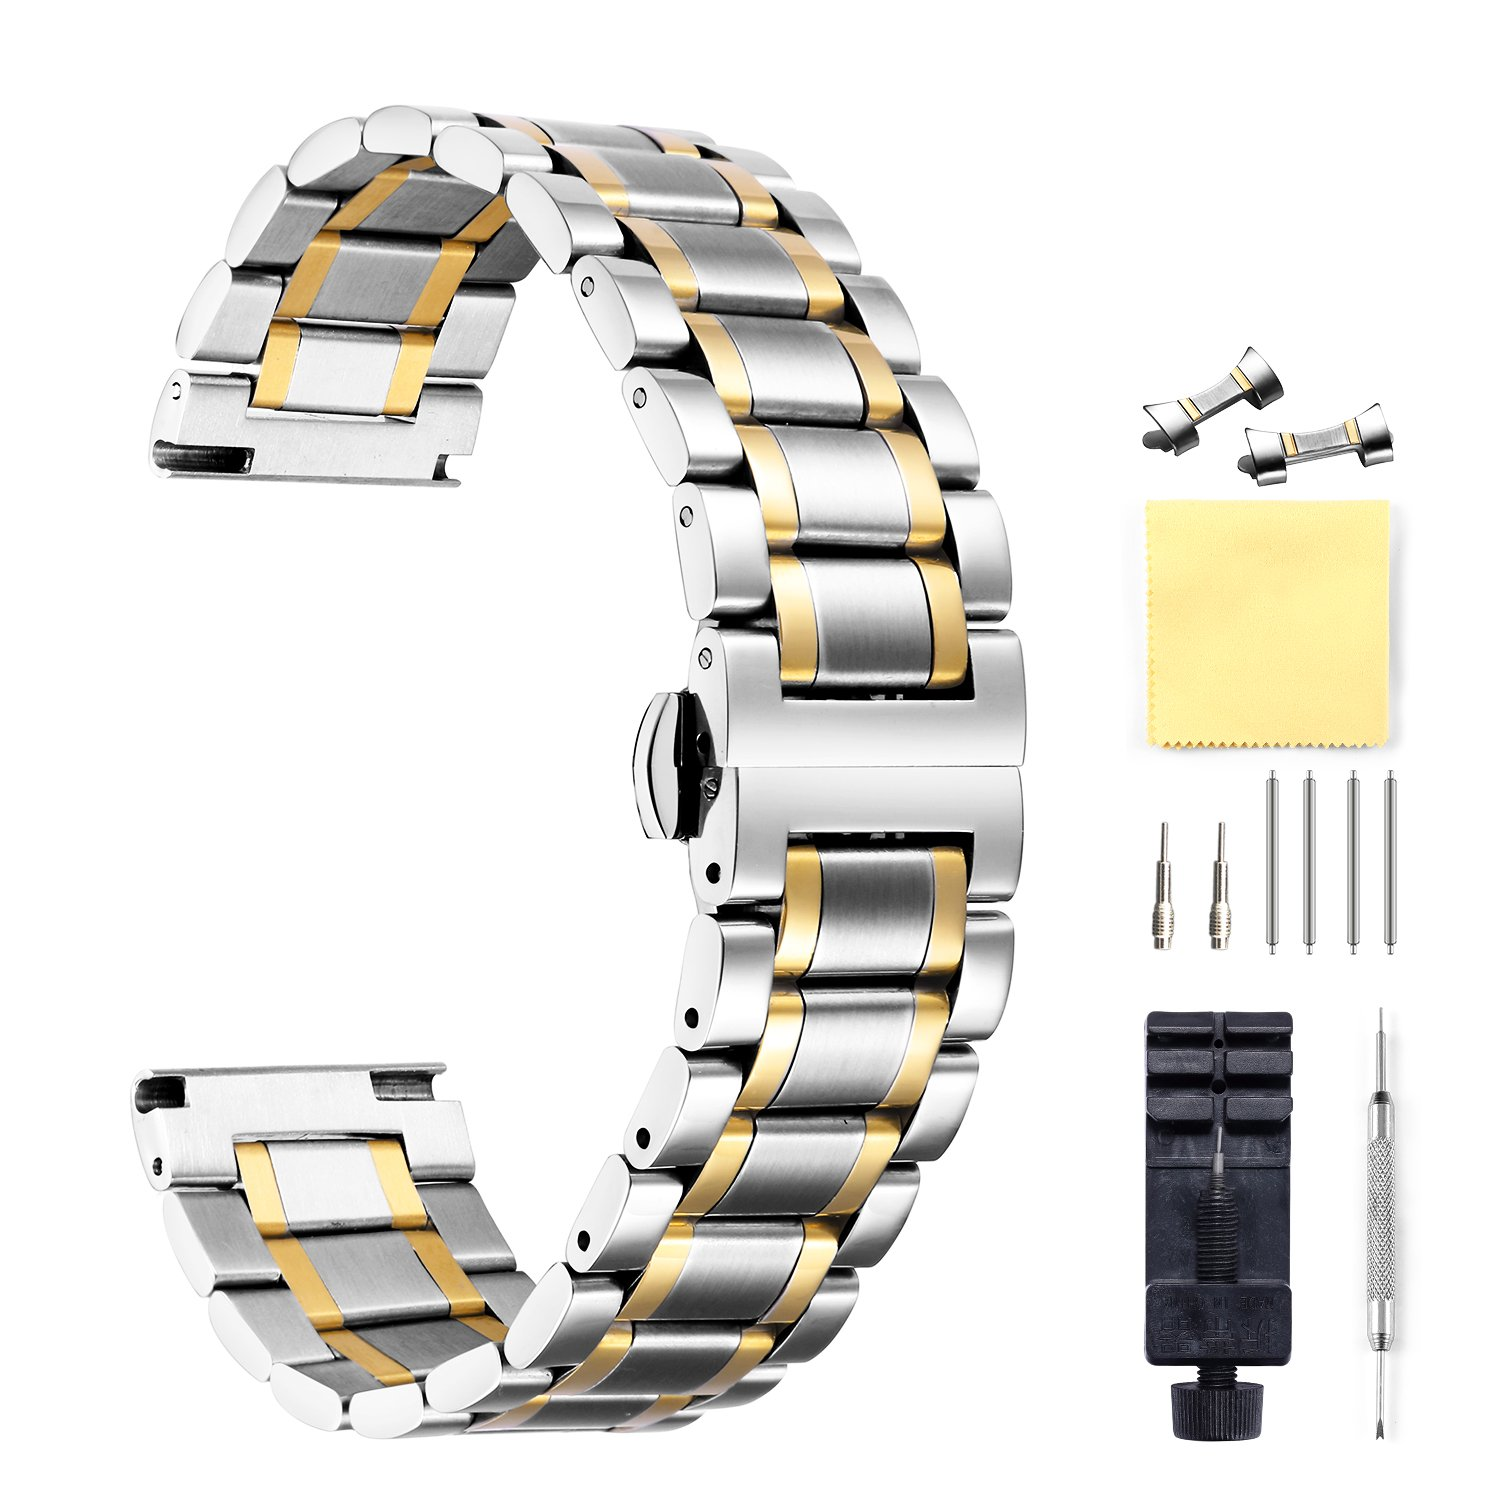 Stainless Steel Watch Bands with Straight & Curved End 5 Color(Gold, Sliver, Black, Rose Gold, Gold-Silver Two Tone) 9 Size(12mm to 24mm) by BINLUN